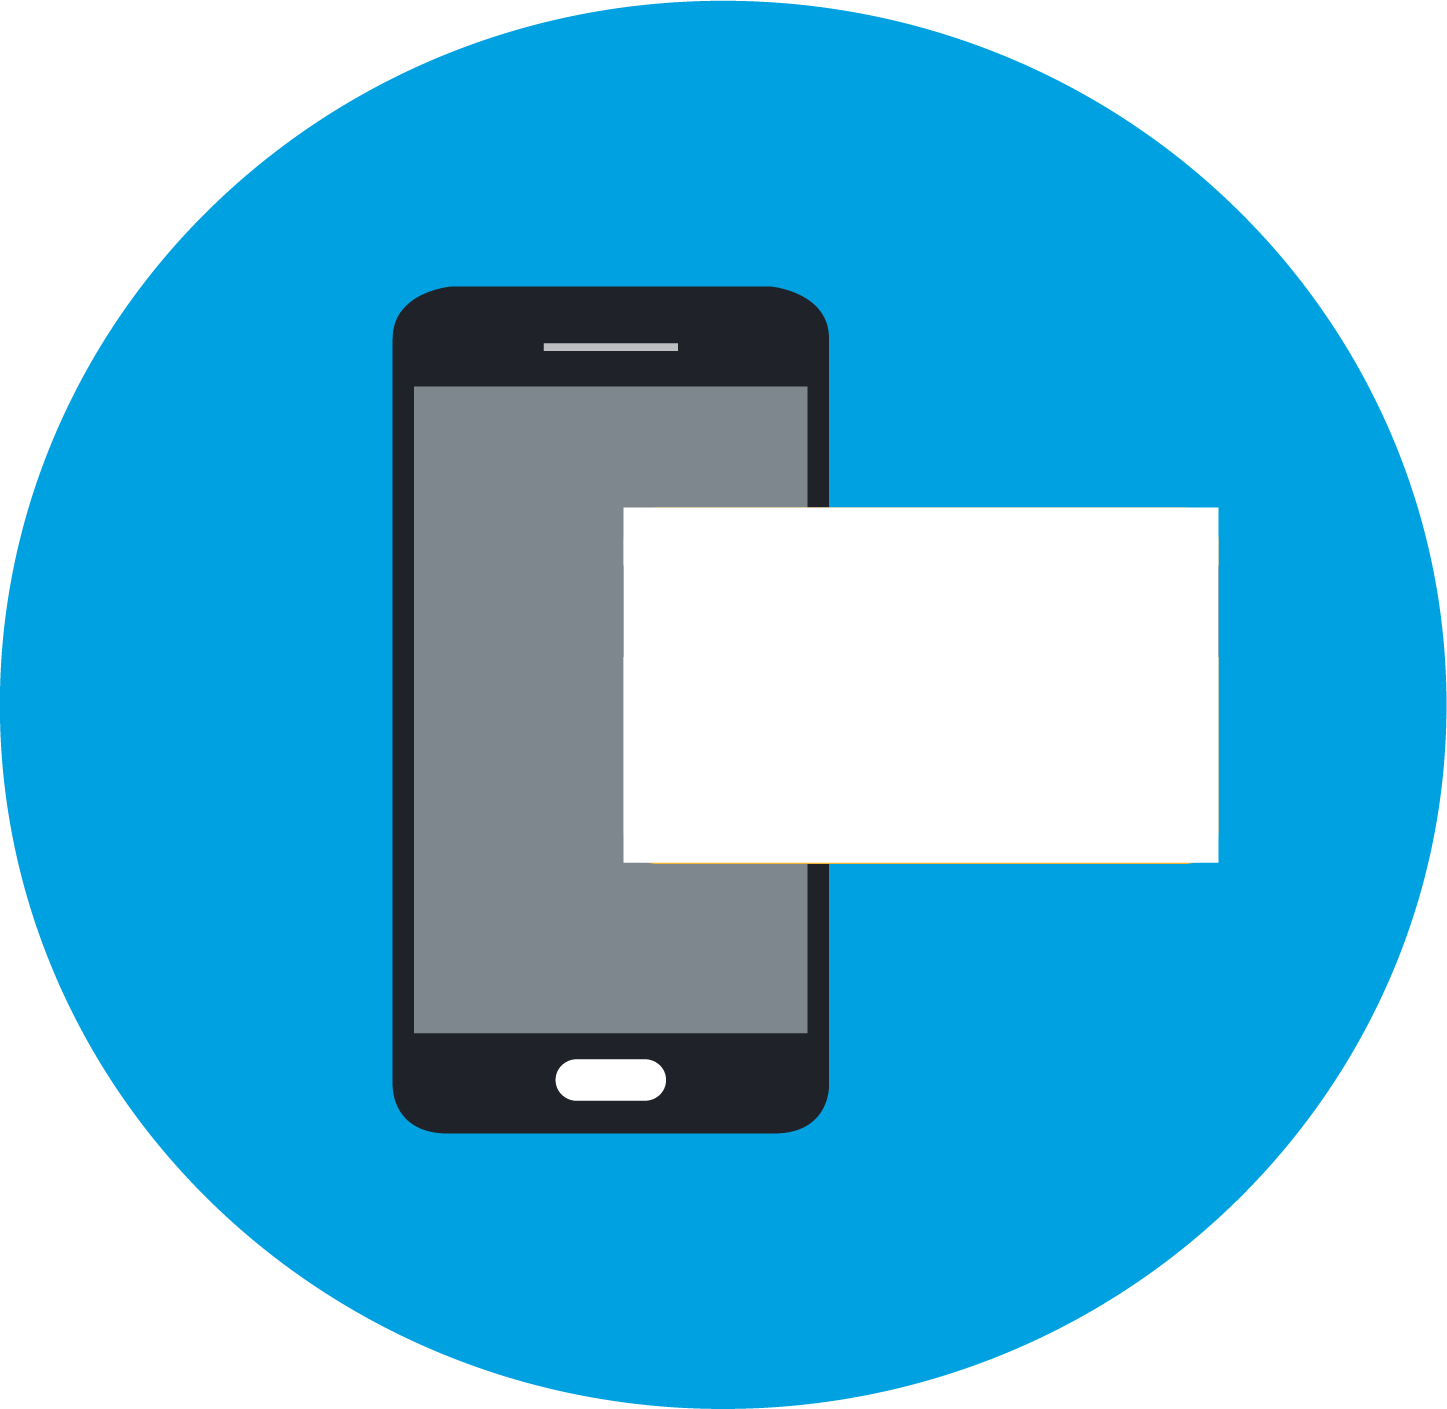 Visione salesforce appexchange partner. Clipart phone business card